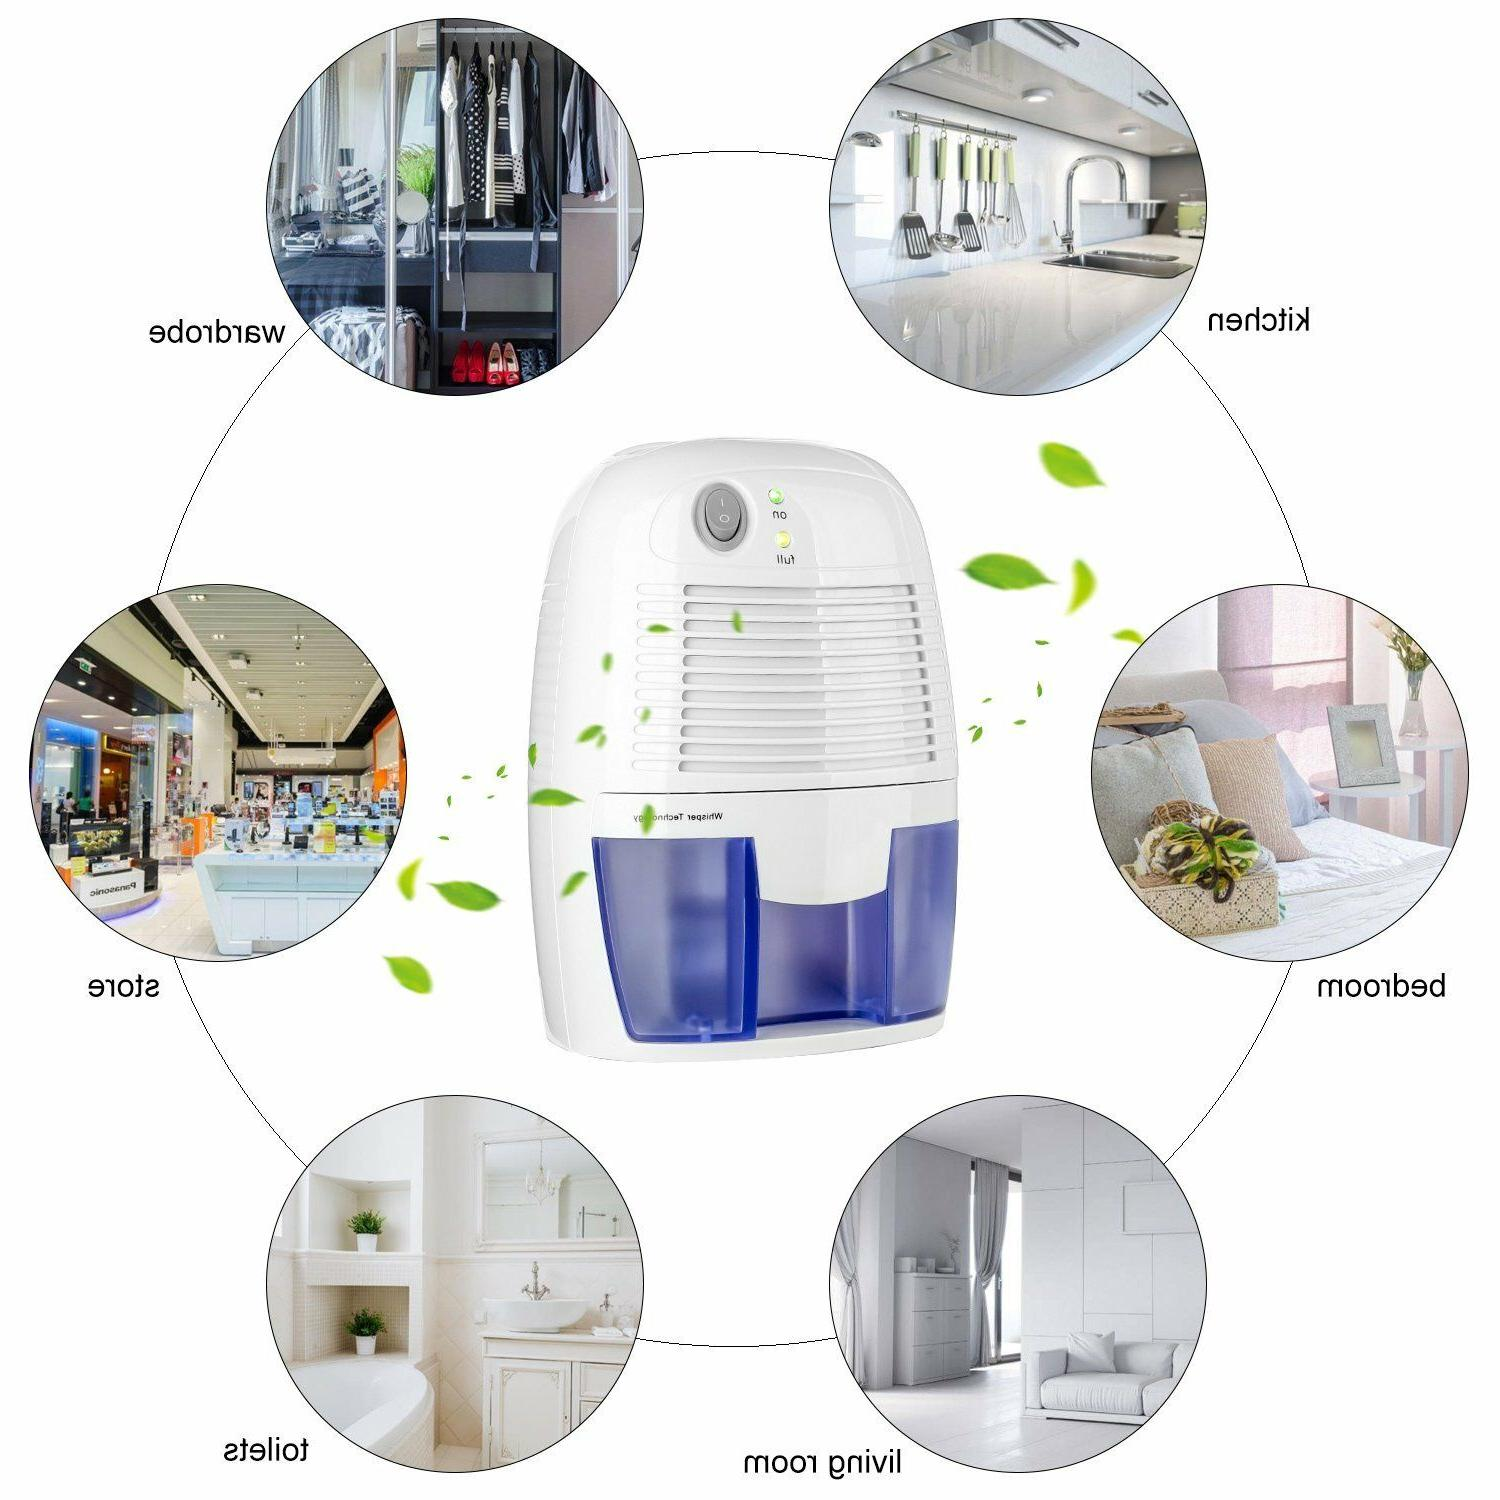 LUOYIMAN Electric Portable Dehumidifier for Home Intelligent